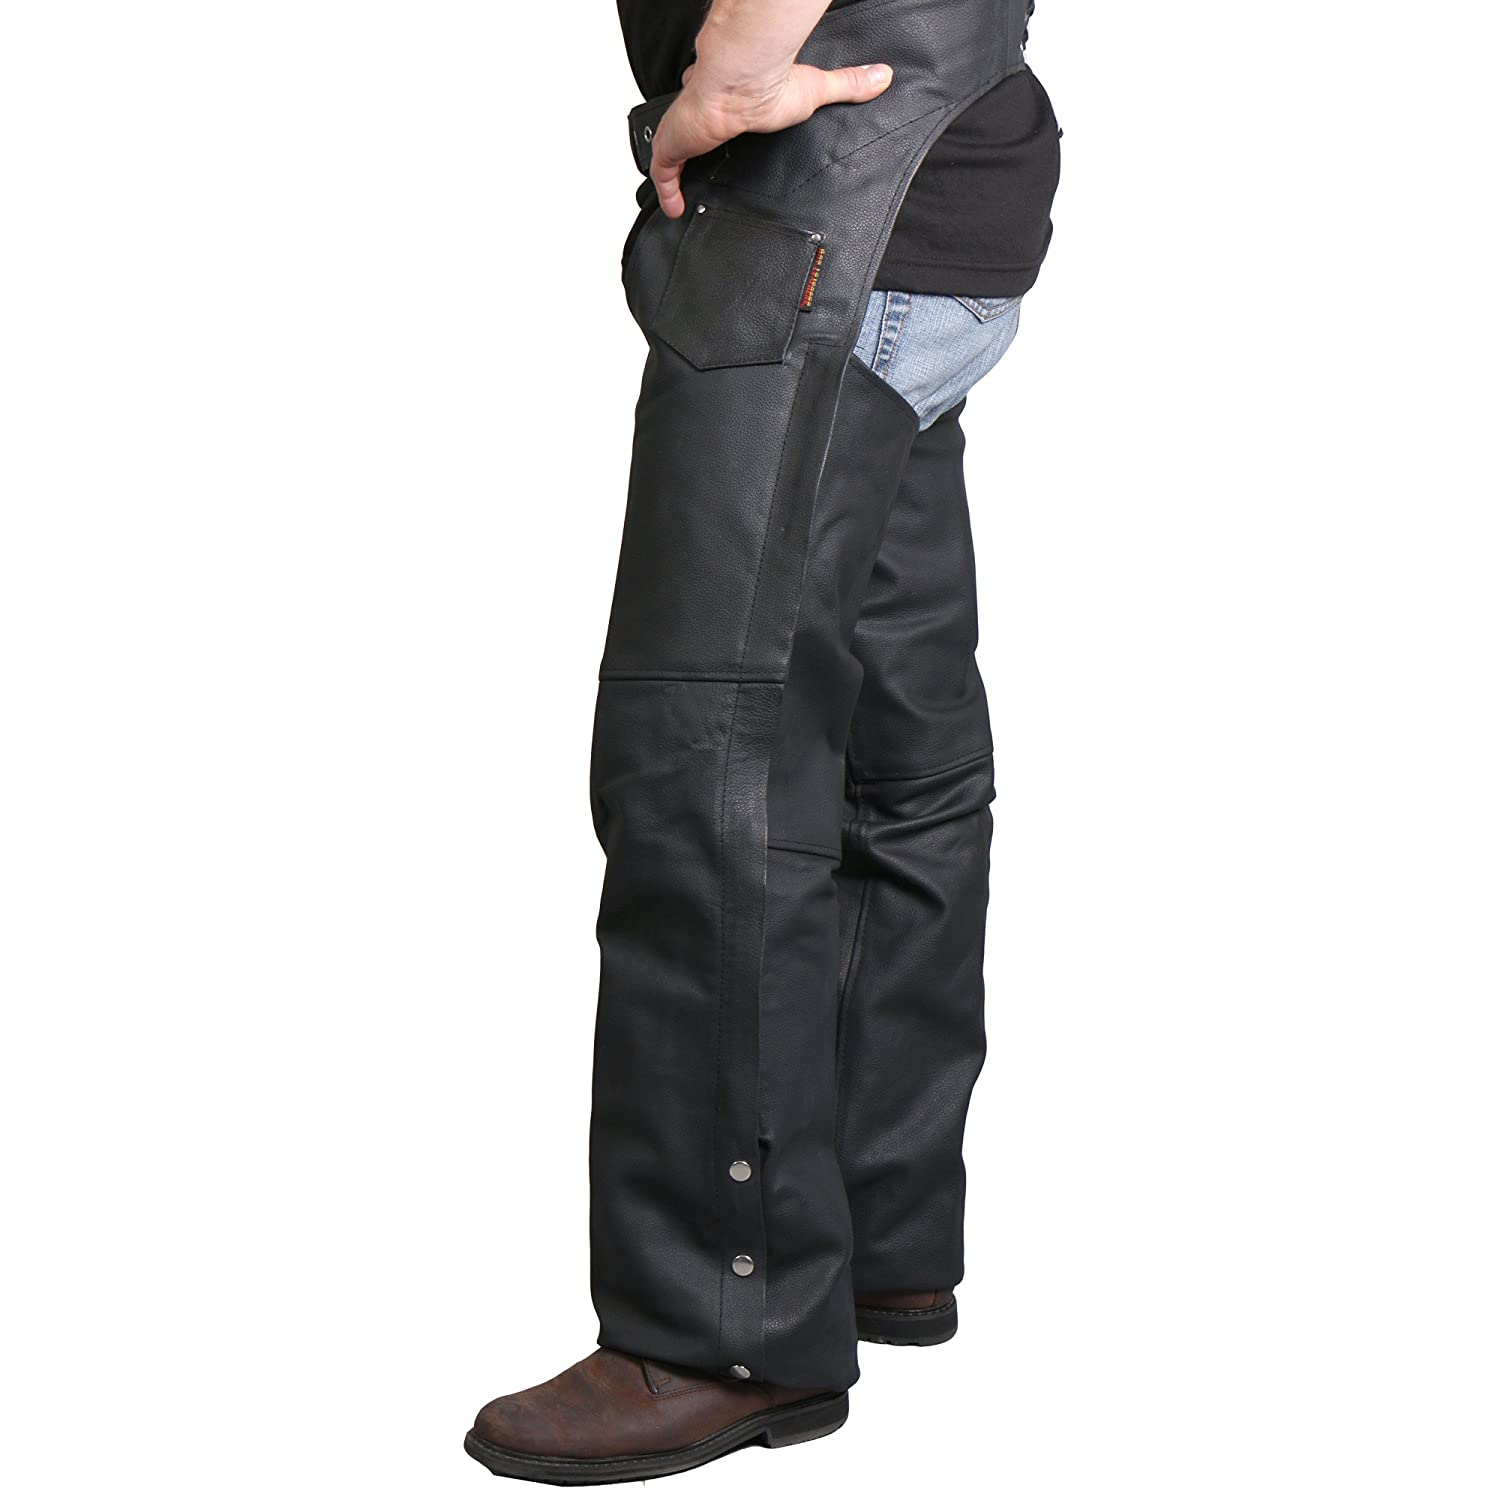 Black, Medium Hot Leathers Fully Lined Leather Chaps